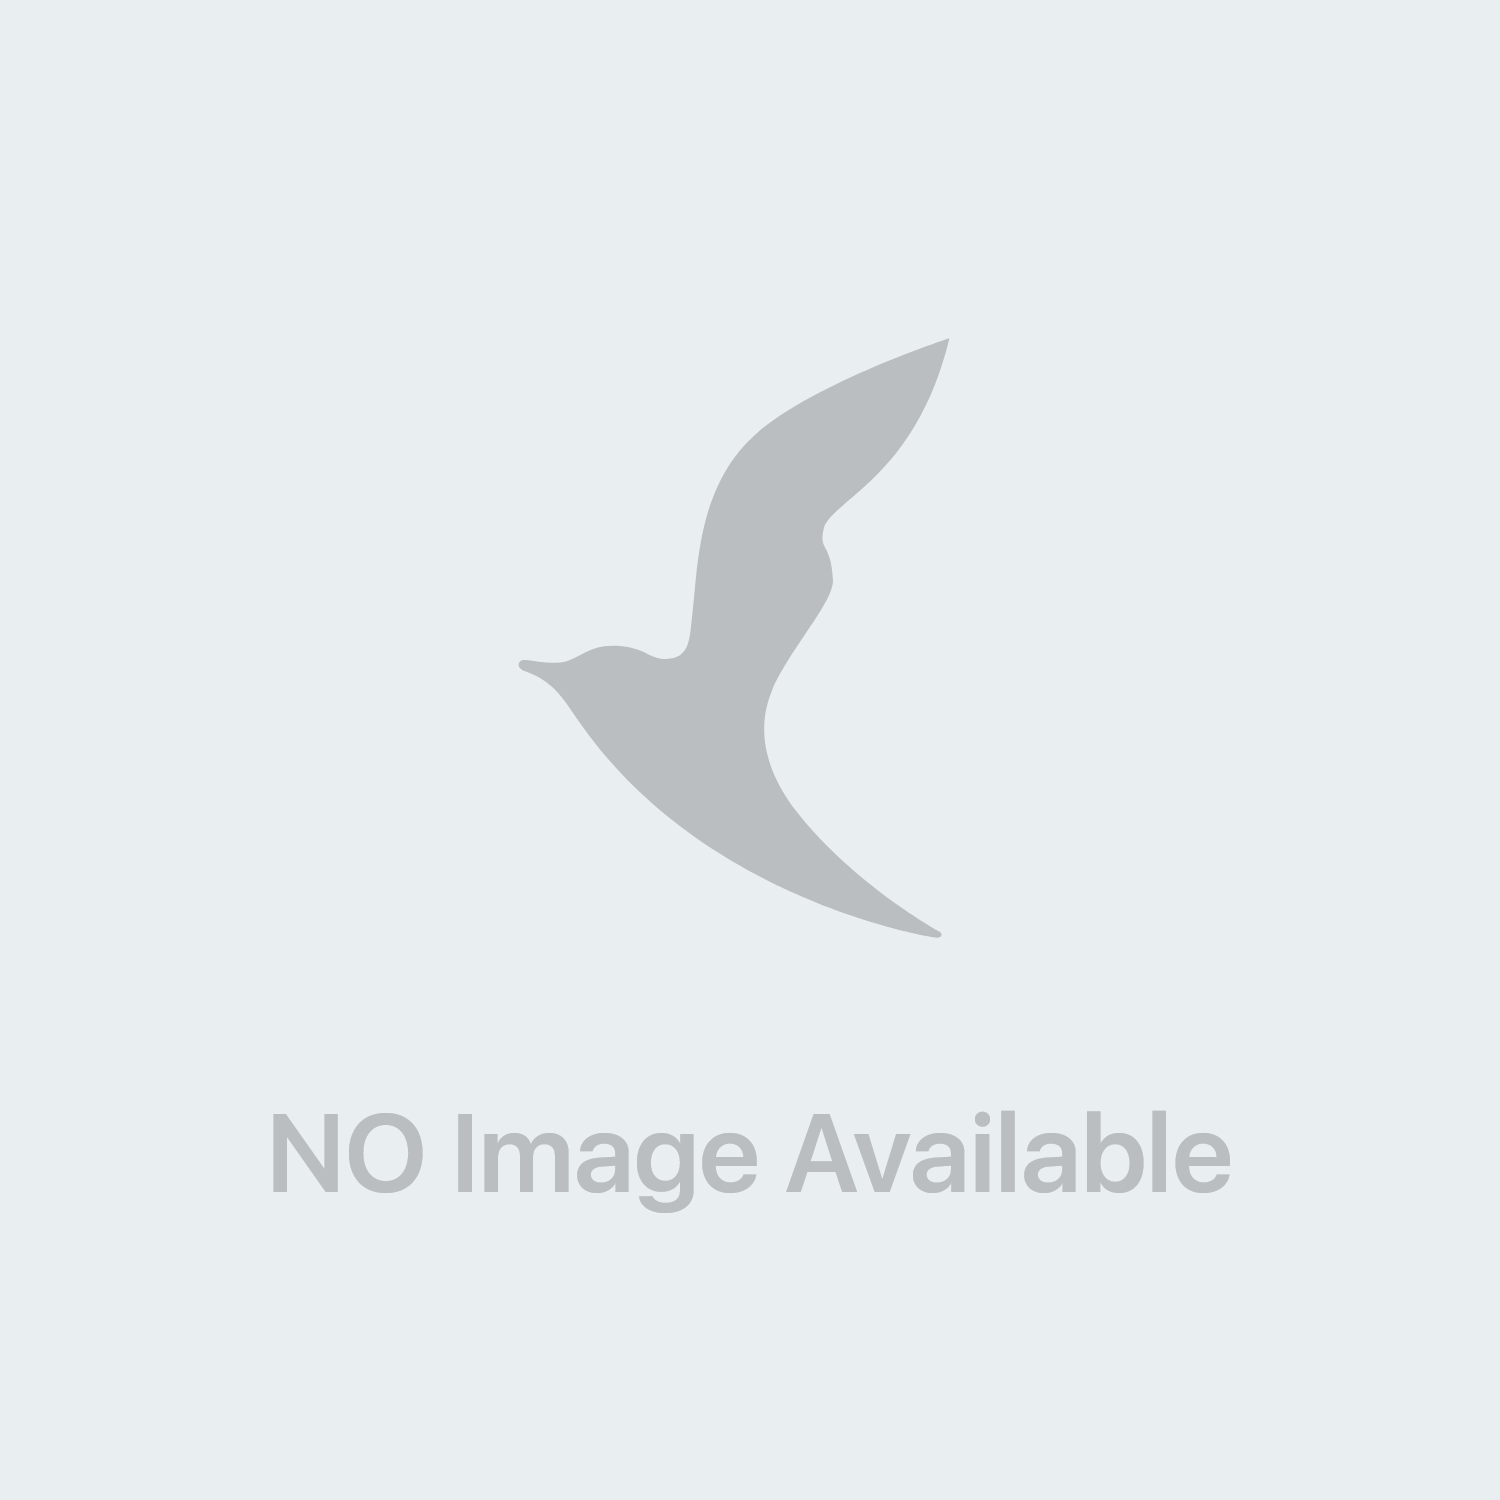 3M Coldhot Nexcare Comfort Cuscinetto in Gel Maxi 20 x 30 cm